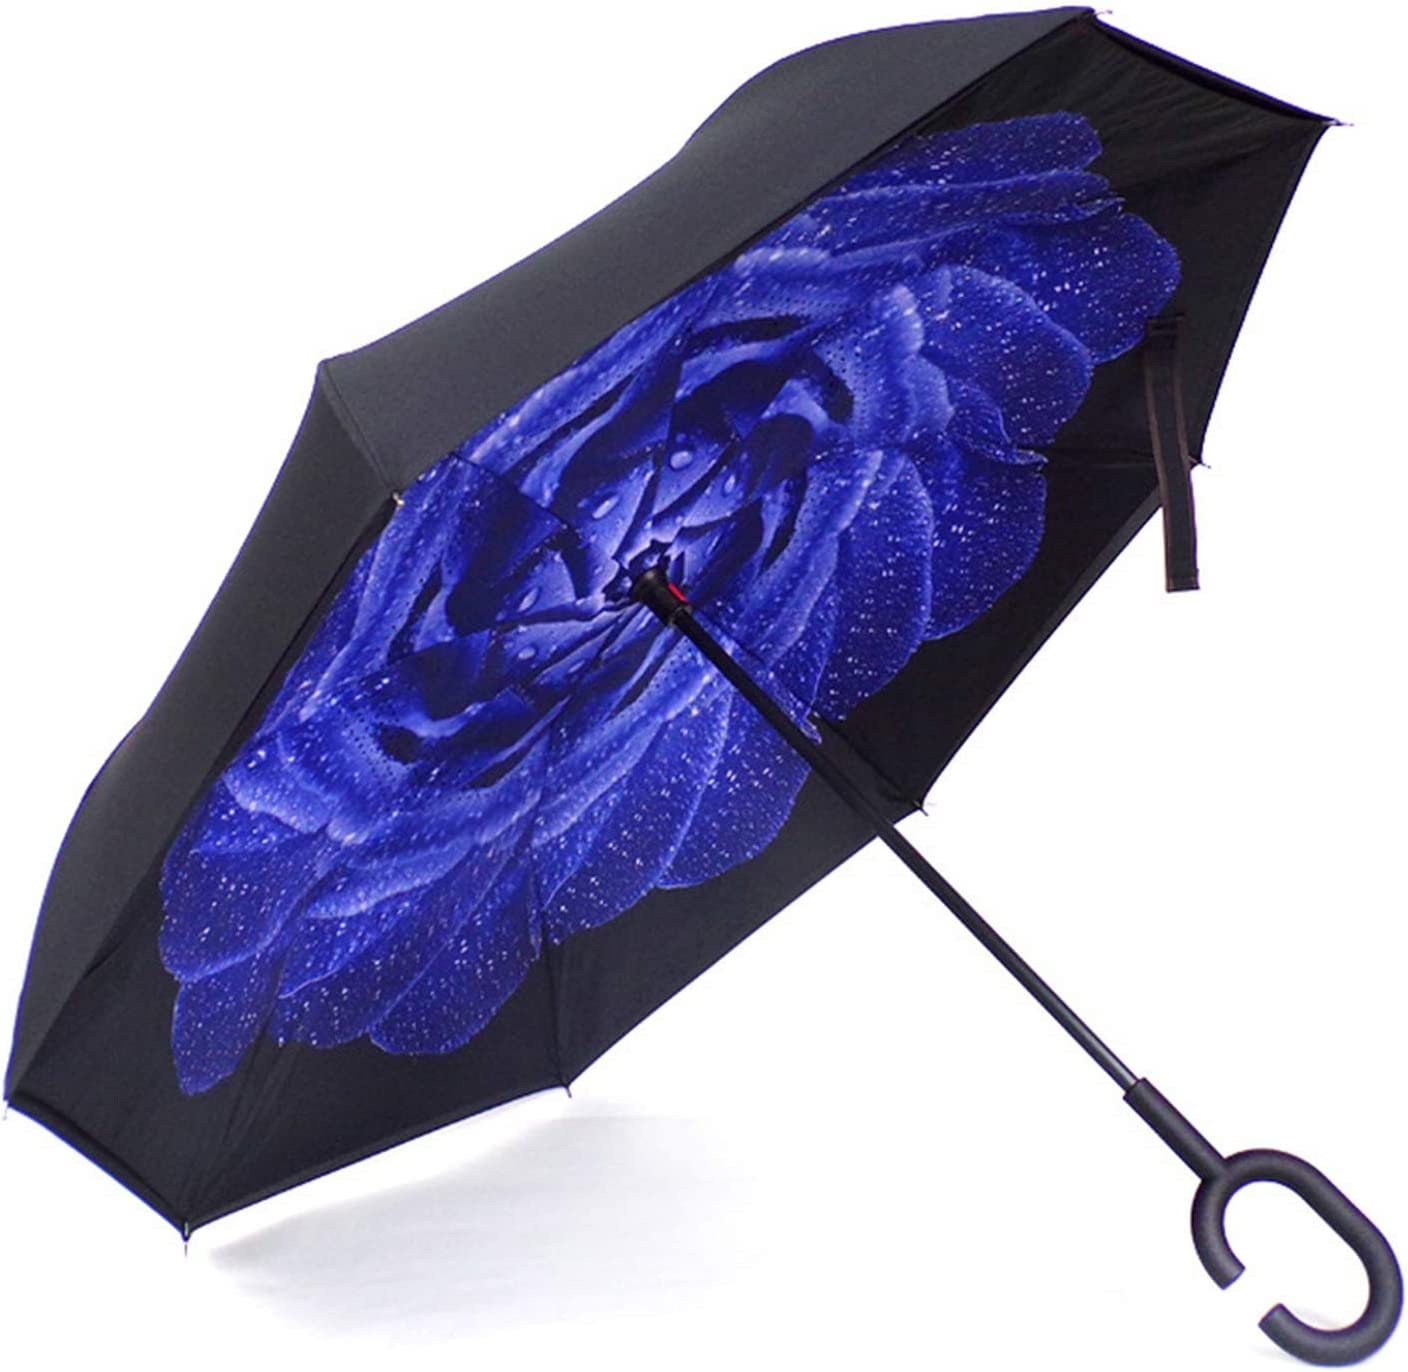 High Grade Double Layer Car Reverse Umbrellas Women Windproof Uv Protection Design Custom Logo Umbrella,Style 02